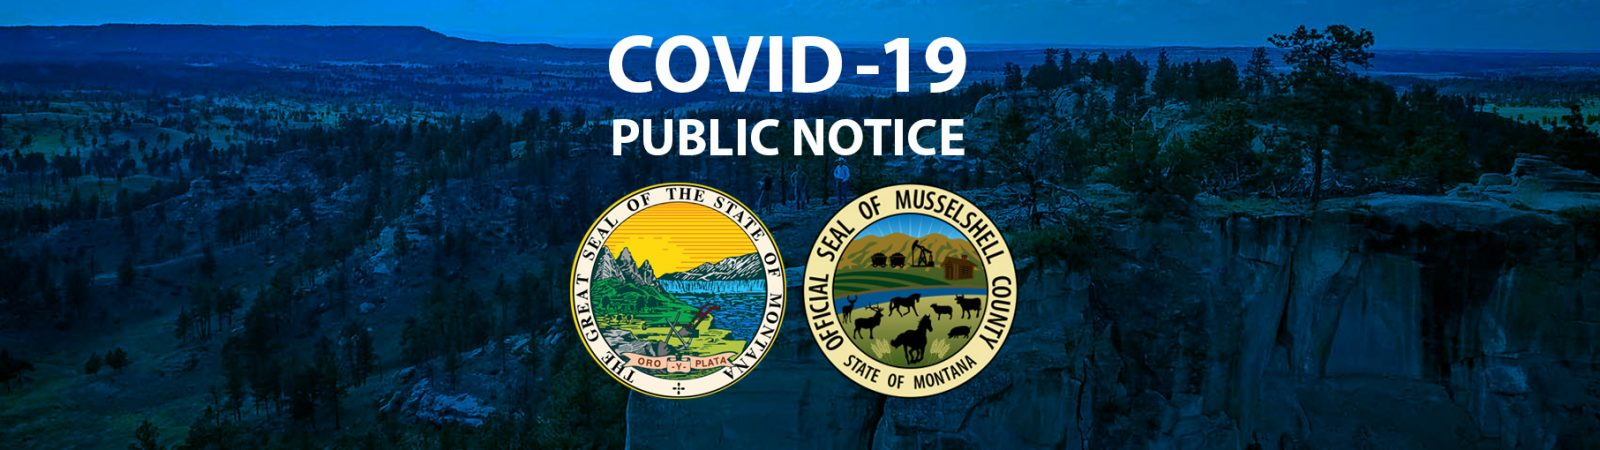 COVID-19 Notice Musselshell County